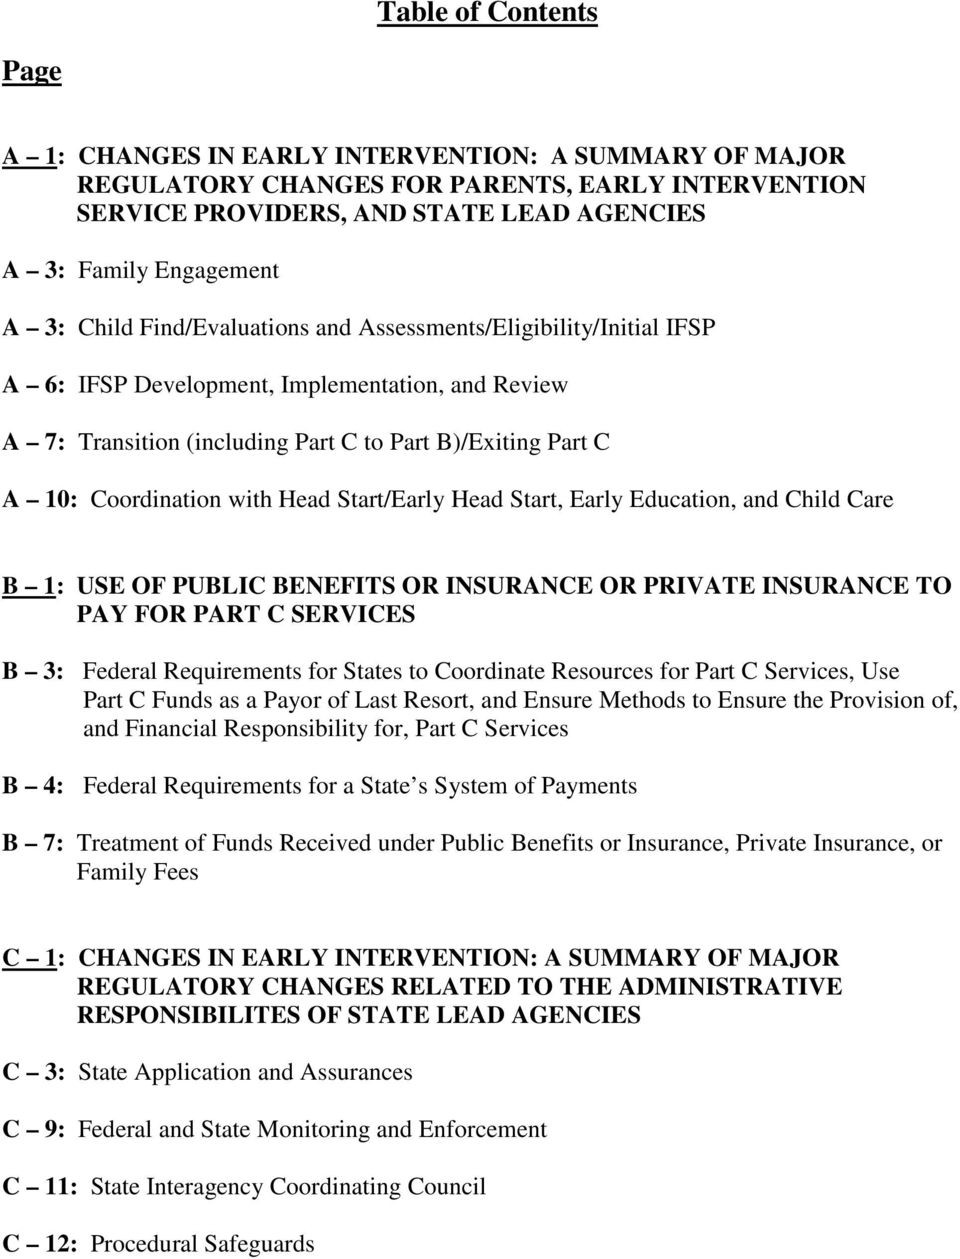 Head Start/Early Head Start, Early Education, and Child Care B 1: USE OF PUBLIC BENEFITS OR INSURANCE OR PRIVATE INSURANCE TO PAY FOR PART C SERVICES B 3: Federal Requirements for States to